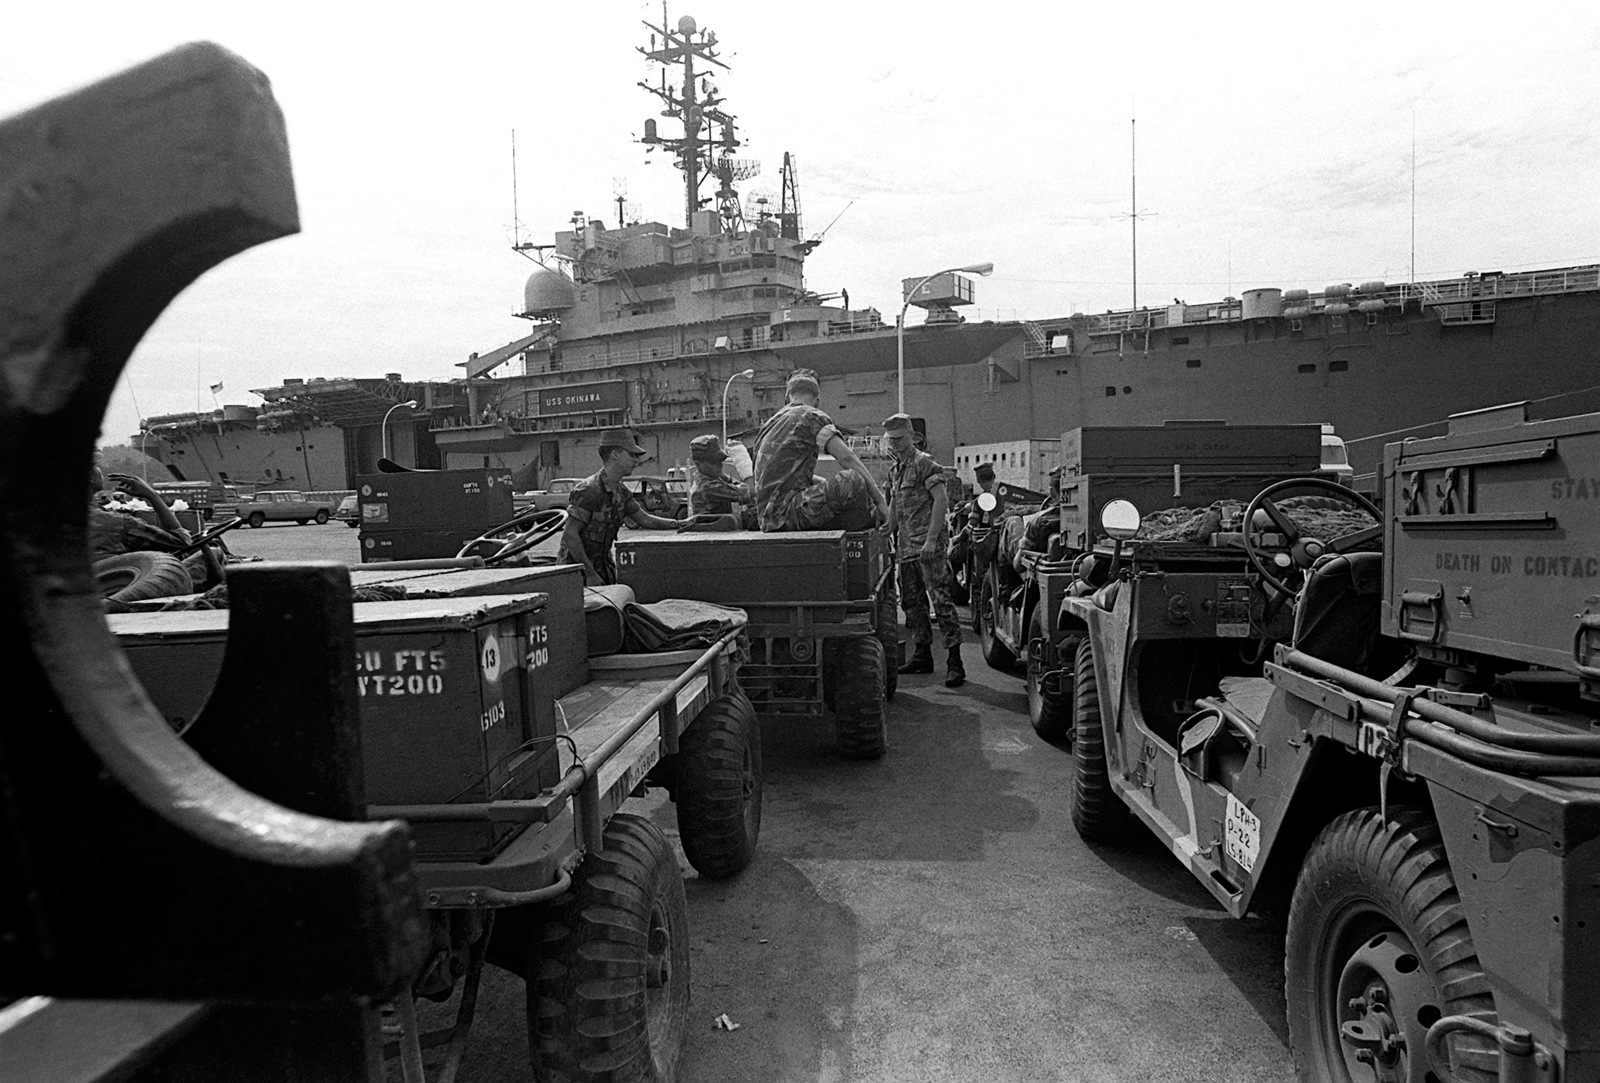 The equipment is staged and the Marines are waiting for the signal to start loading aboard the flagship, USS OKINAWA (LPH-3). The 31st Marine Amphibious Unit is now formed and the Marines are preparing for maneuvers in the Indian Ocean